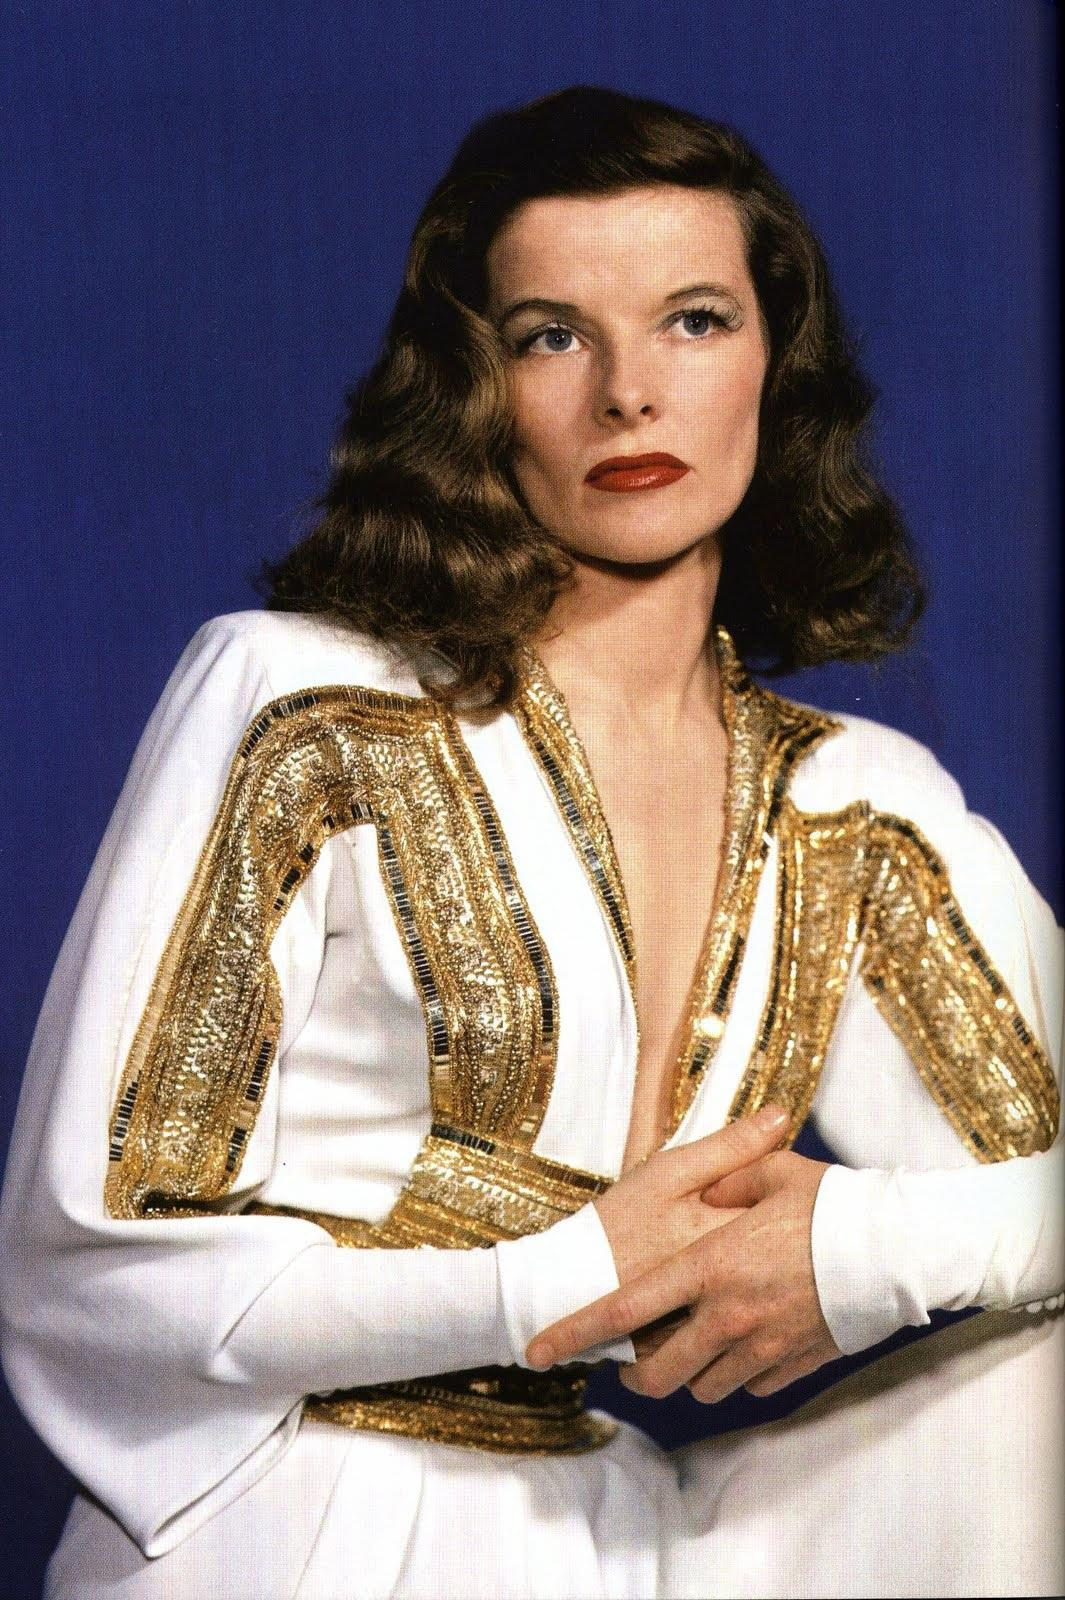 katharine-hepburn-colour-portrait-for-the-philadelphia-story-3a1bd4cb672945f61f25682e289cbe12-large-1514060